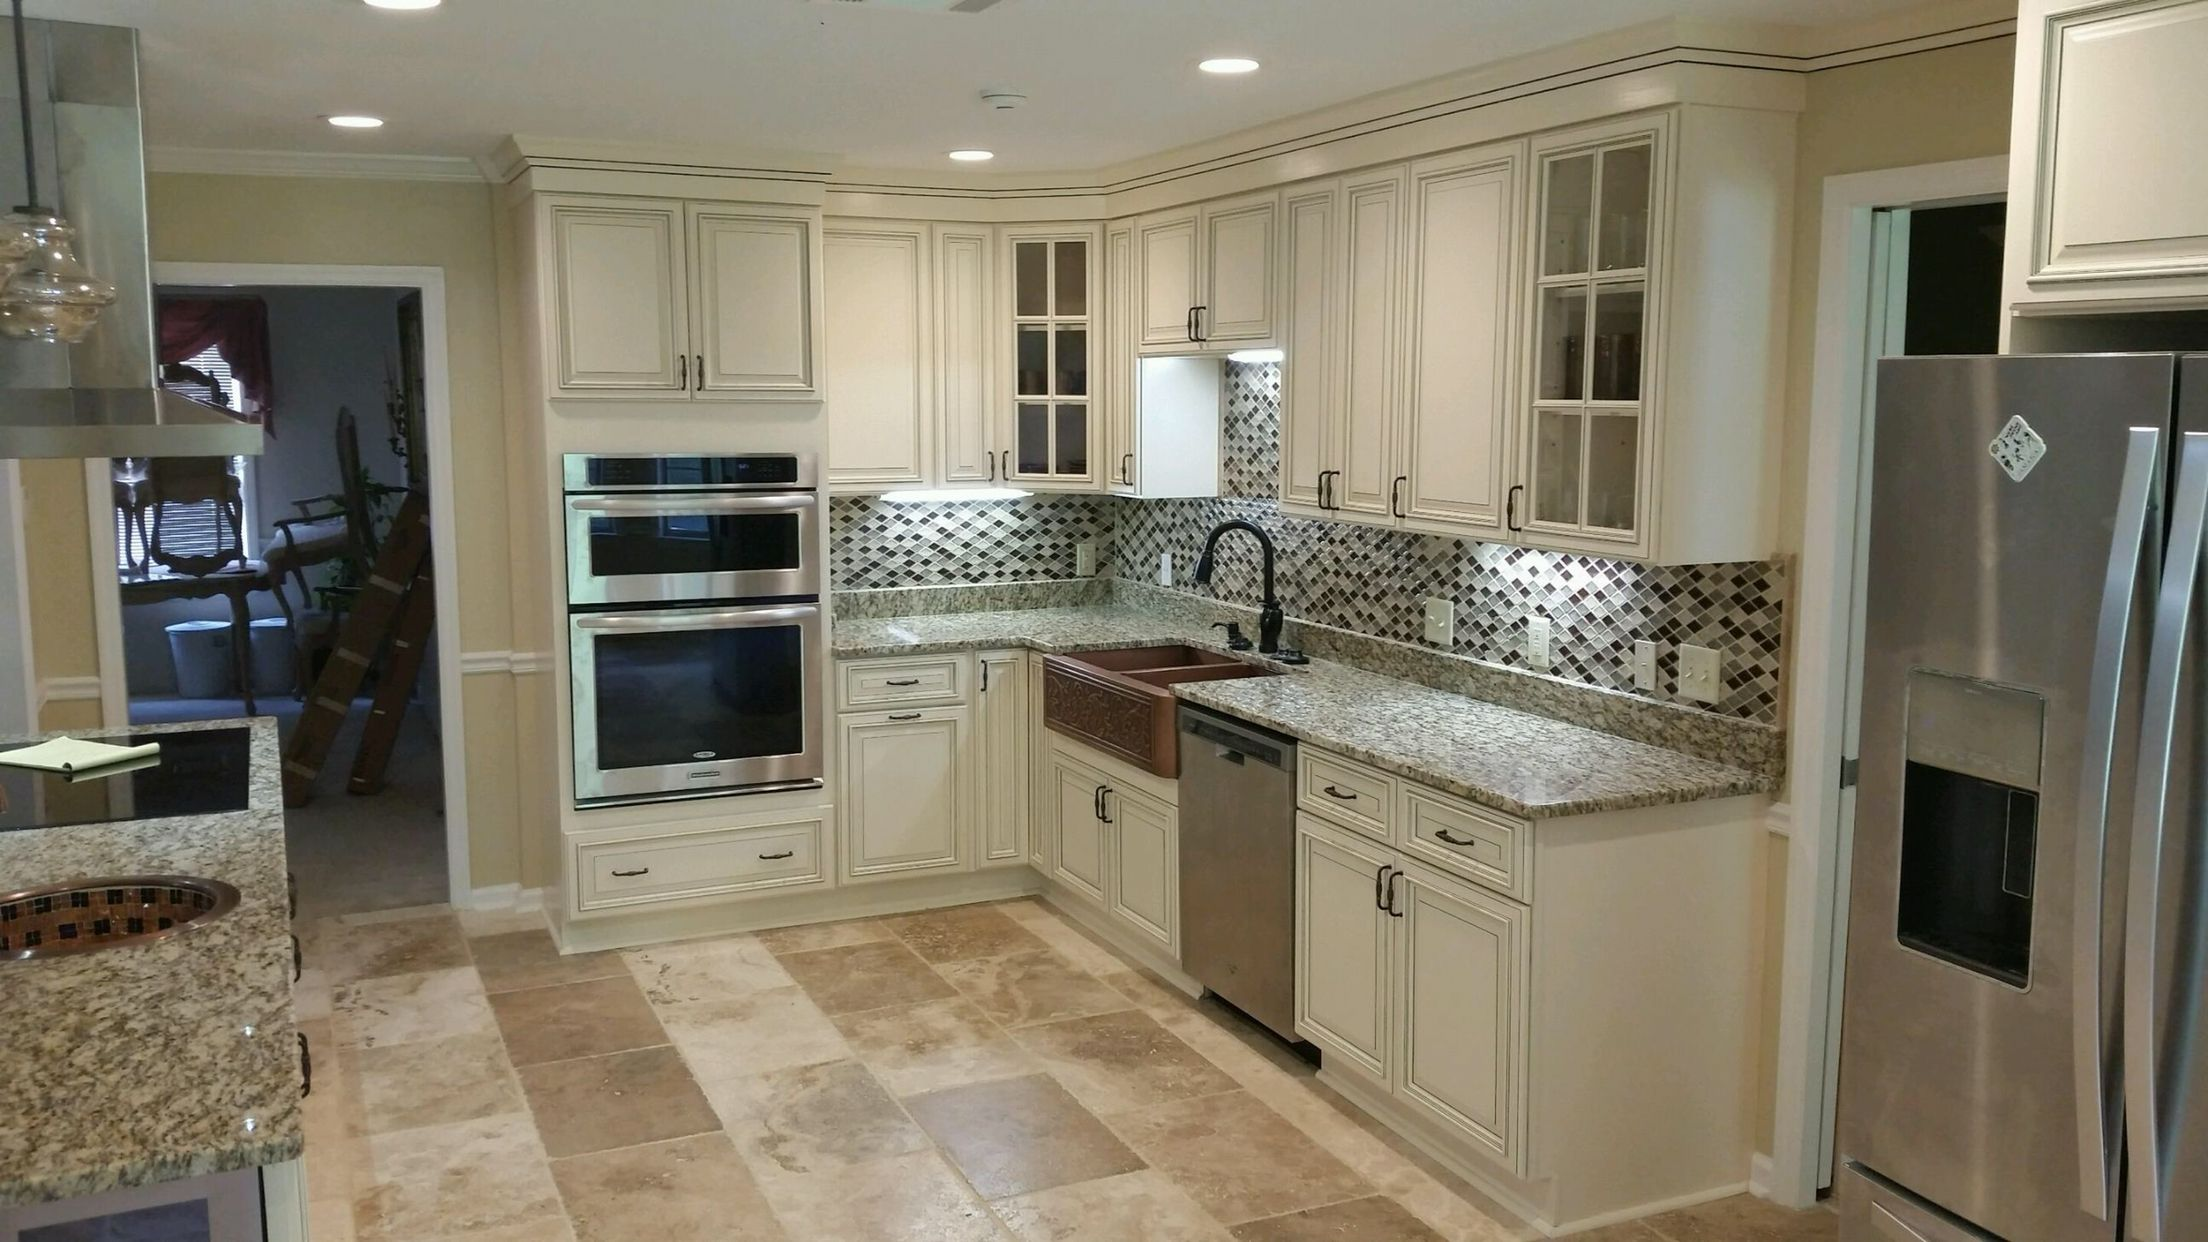 Signature Pearl Kitchen Cabinets And Santa Cecelia Granite Blend For A Spectacular Kitchen Nugre Kitchen Cabinets Kitchen Remodel Affordable Kitchen Cabinets